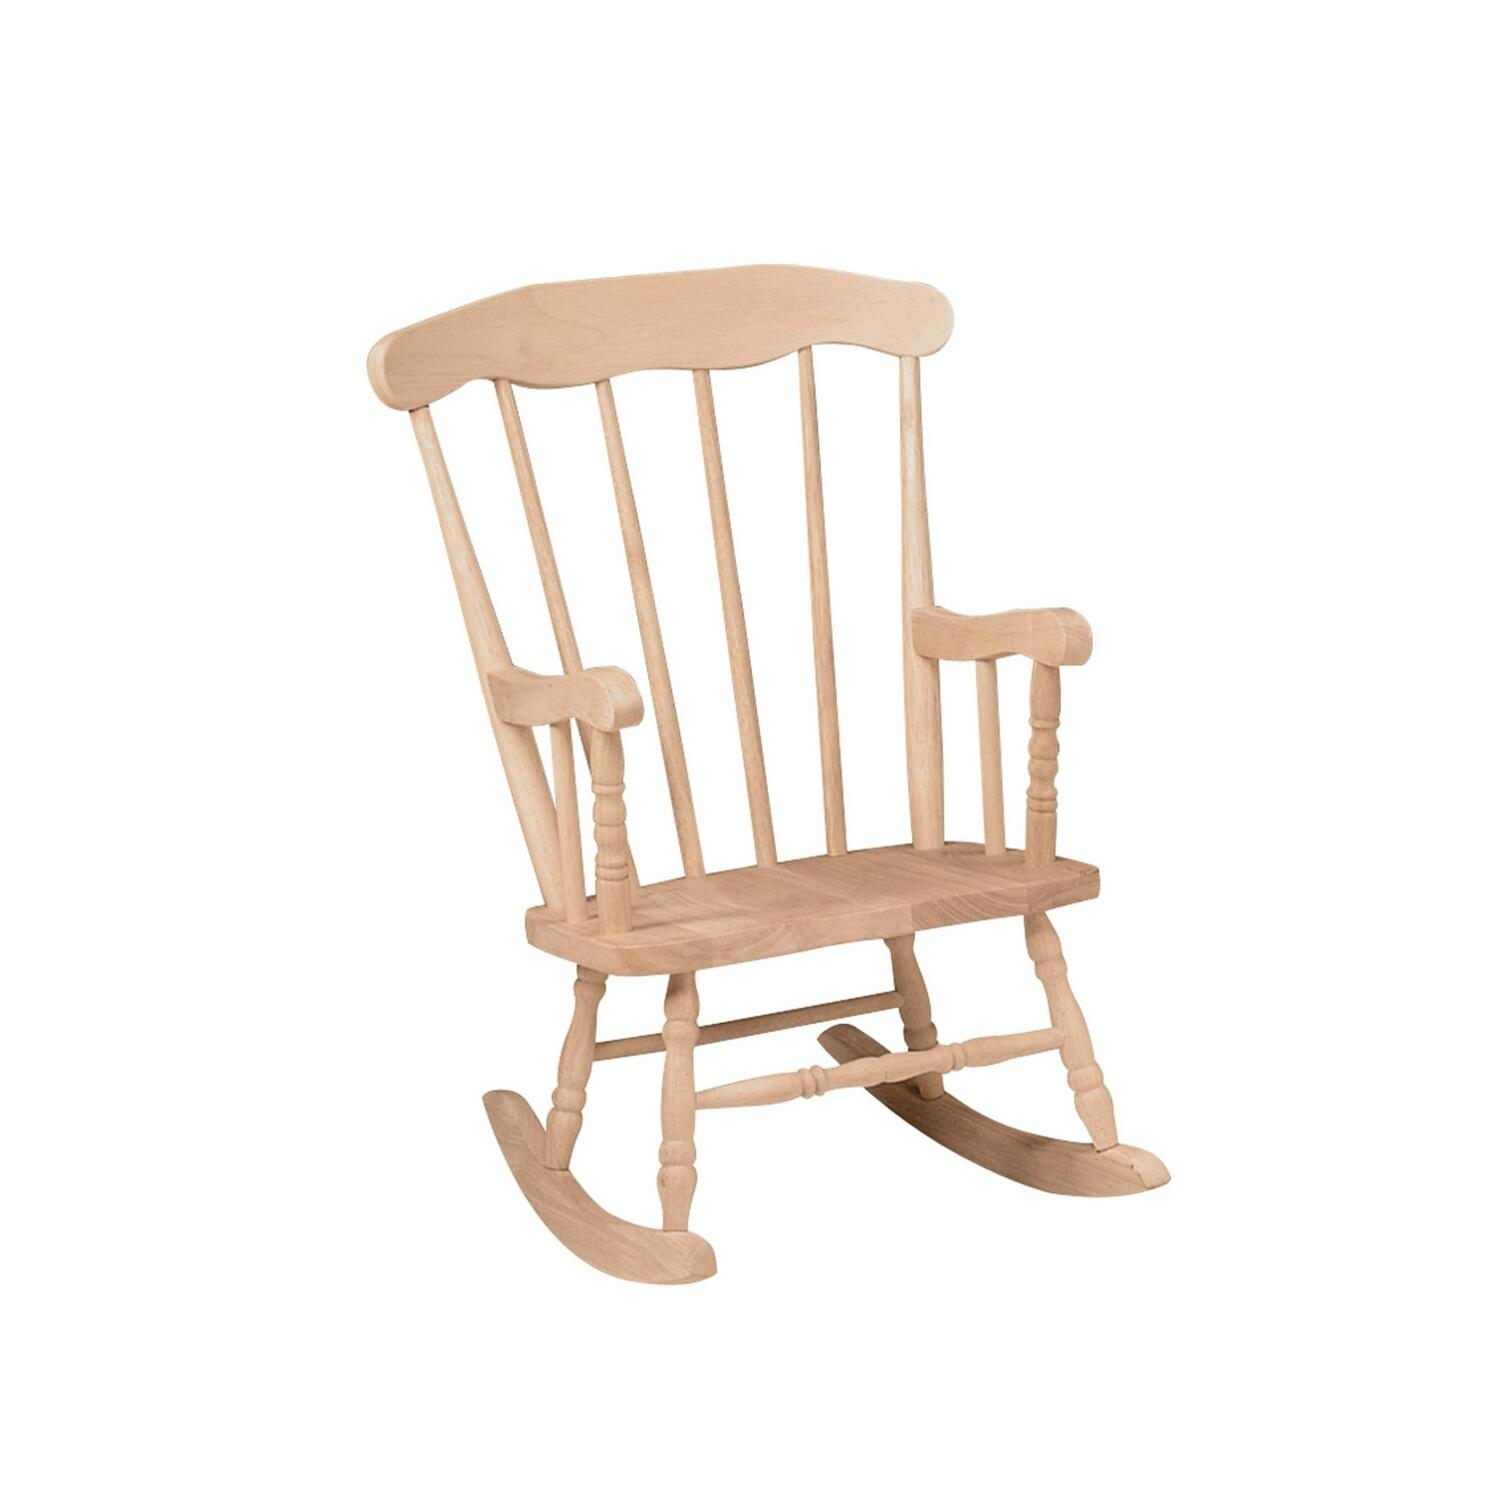 International Concepts Boston Rocker by OJ Commerce 1CC-2465 - $77.79